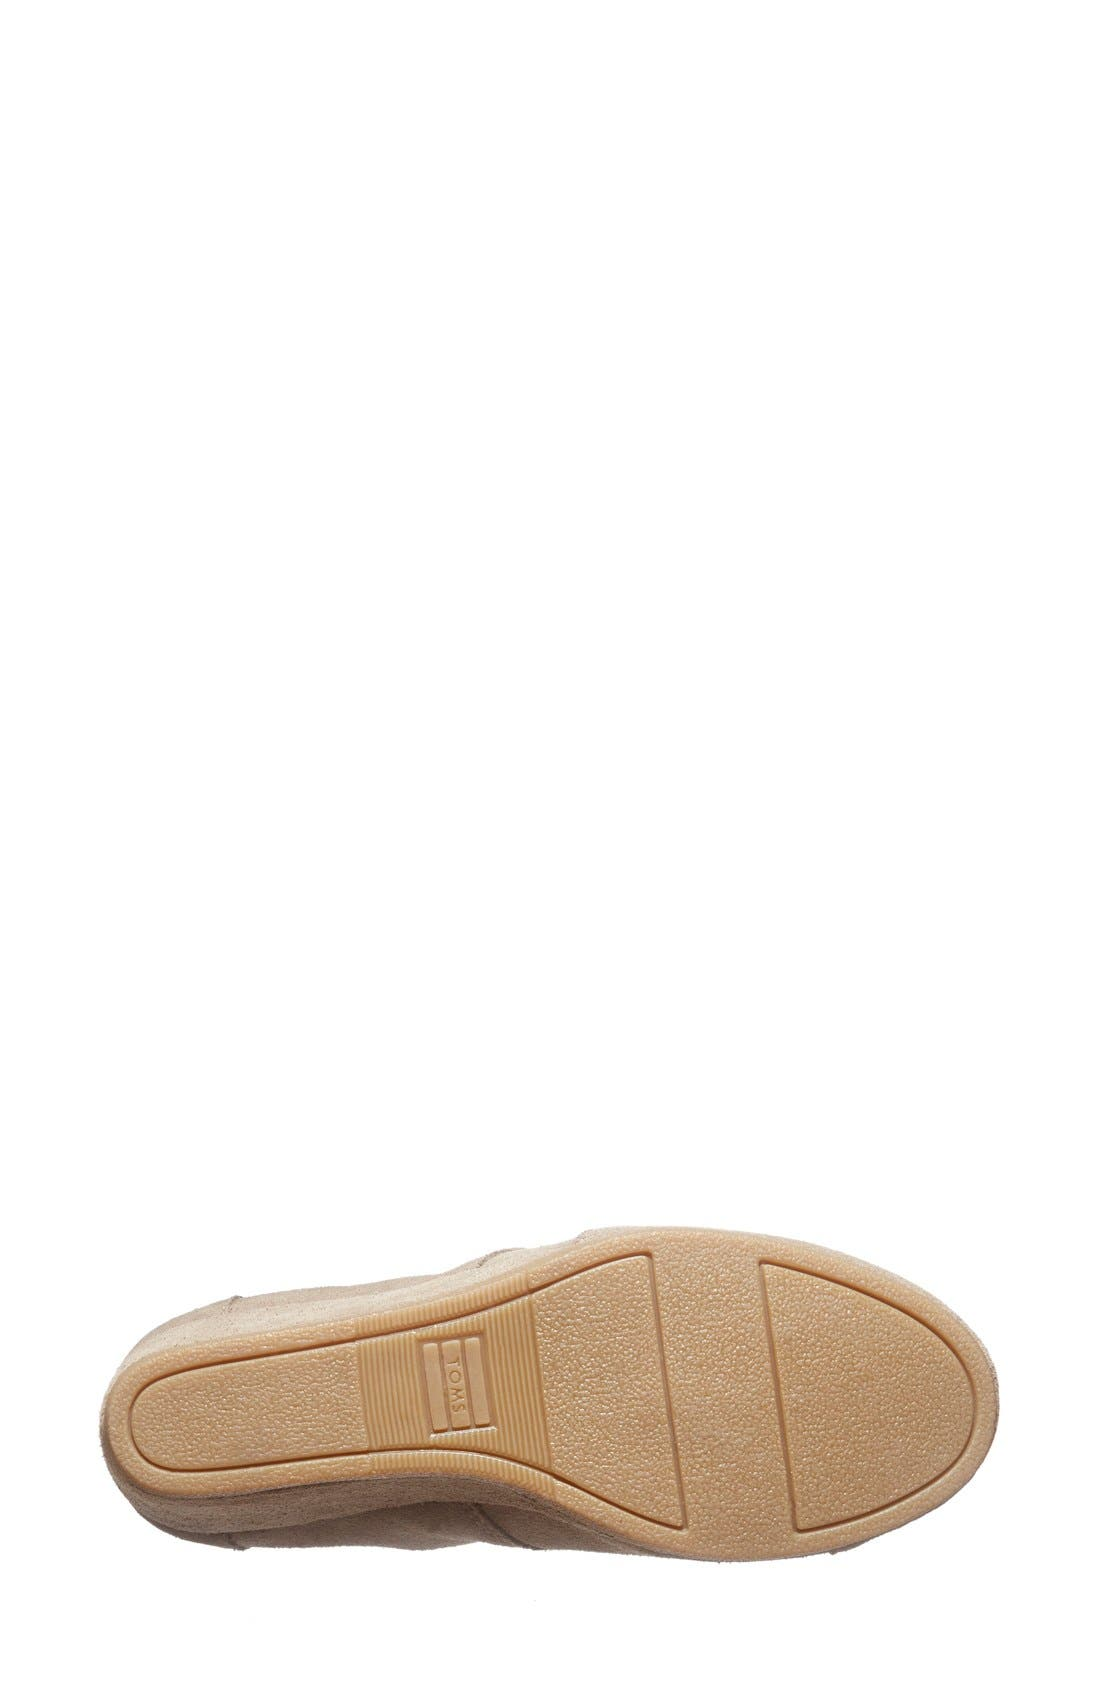 'Desert' Wedge Bootie,                             Alternate thumbnail 4, color,                             Taupe Suede